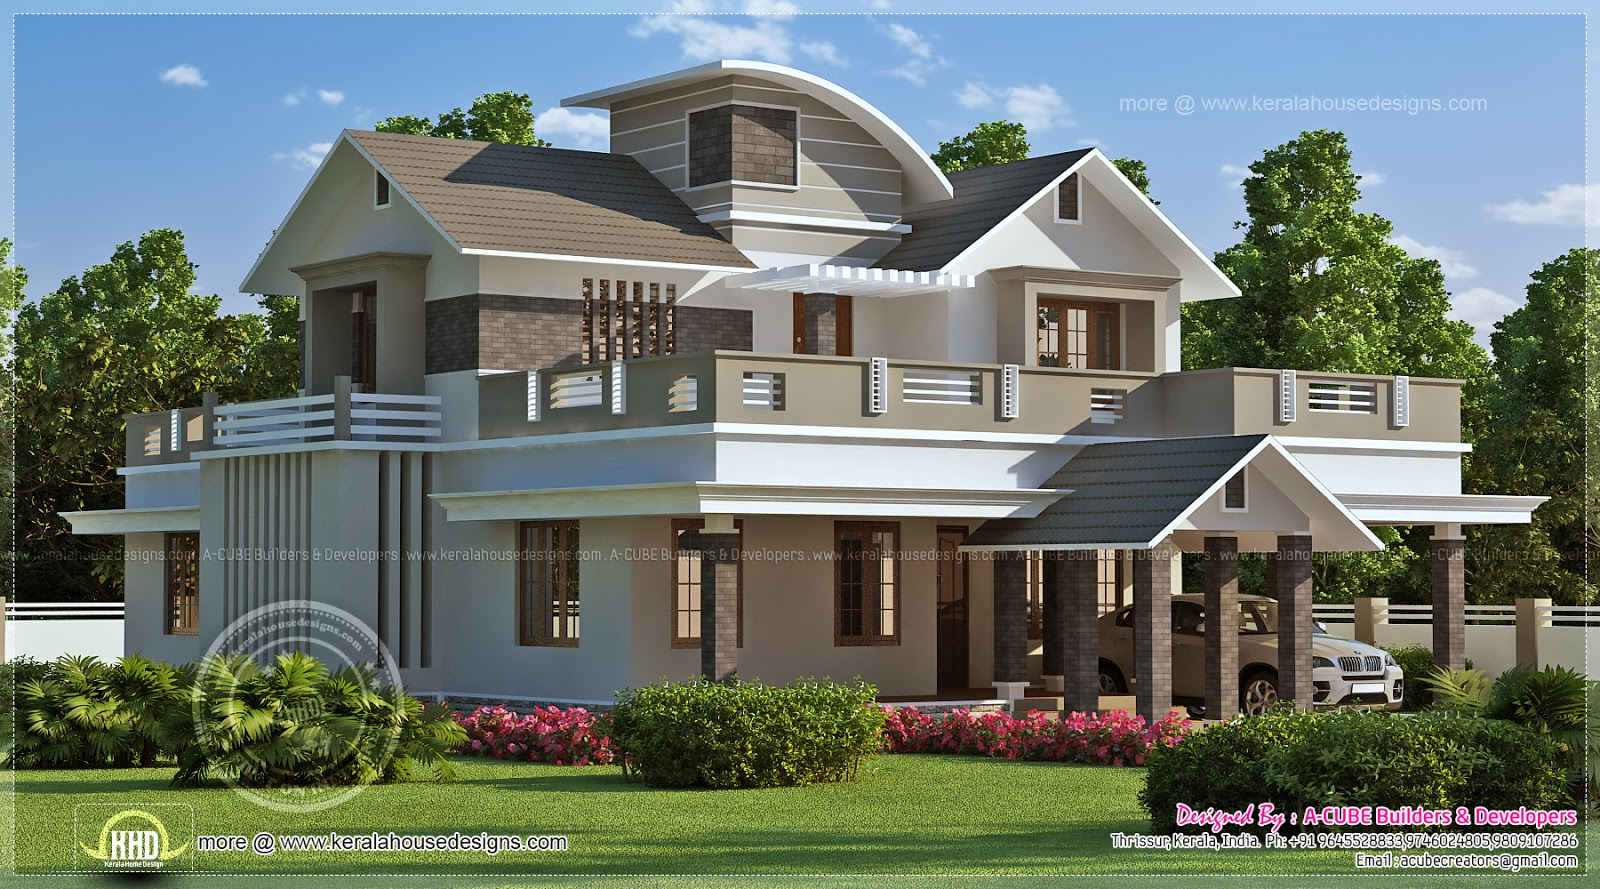 Interior and exterior photographs of 2400 sq ft home for 2400 sq ft house plans